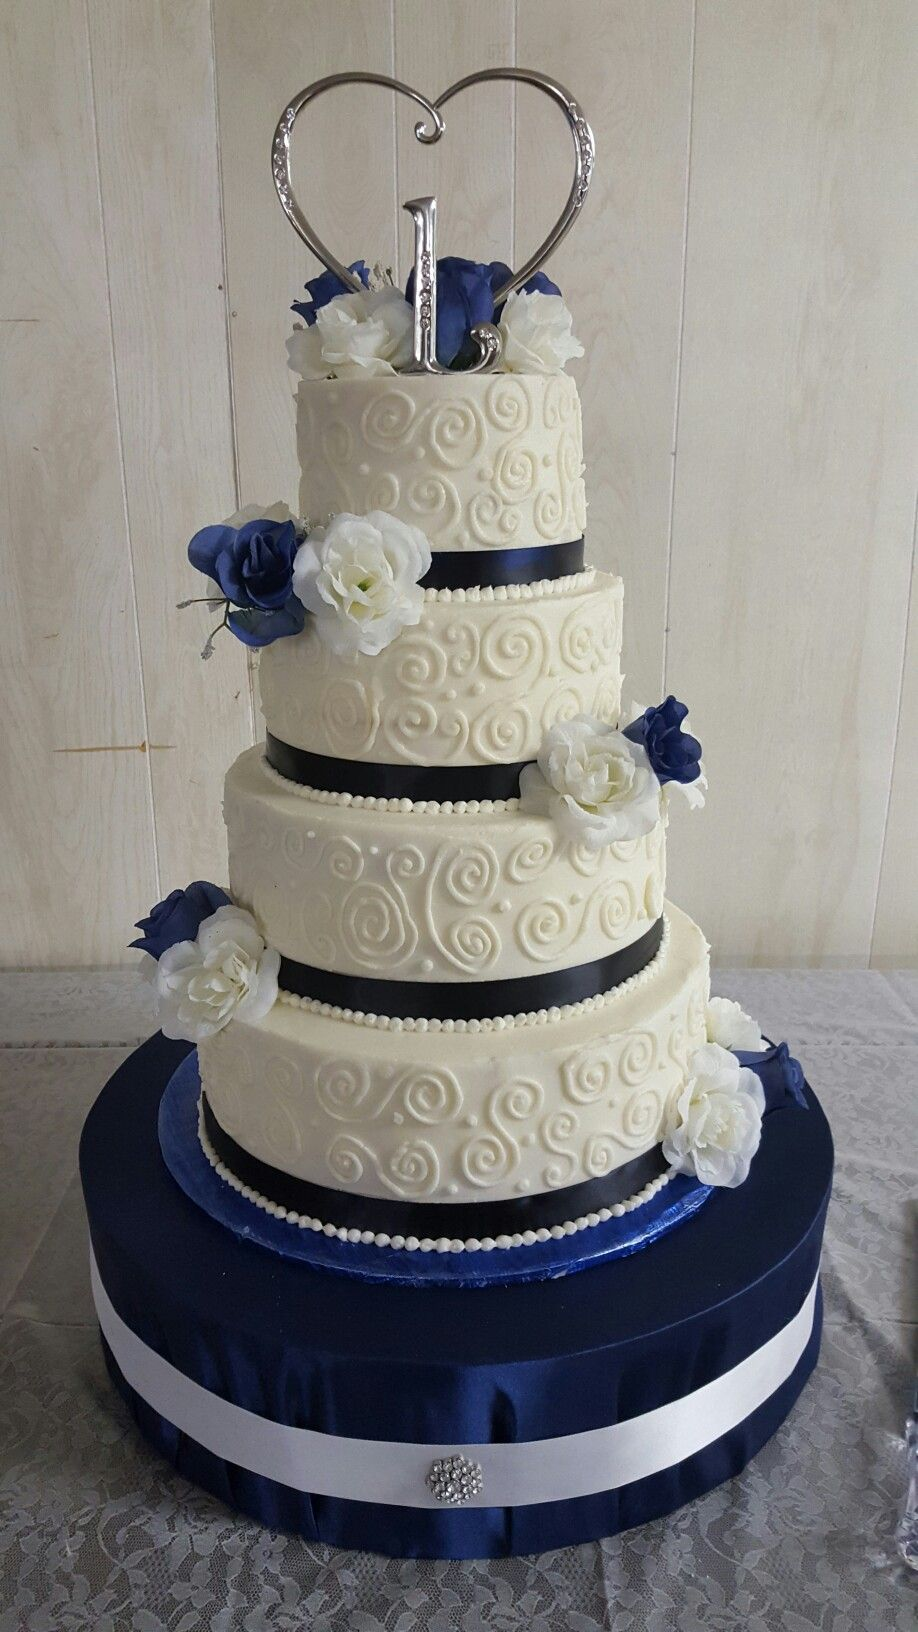 Navy Blue And White Wedding Cake 6 Inch 8 Inch 10 Inch And 12